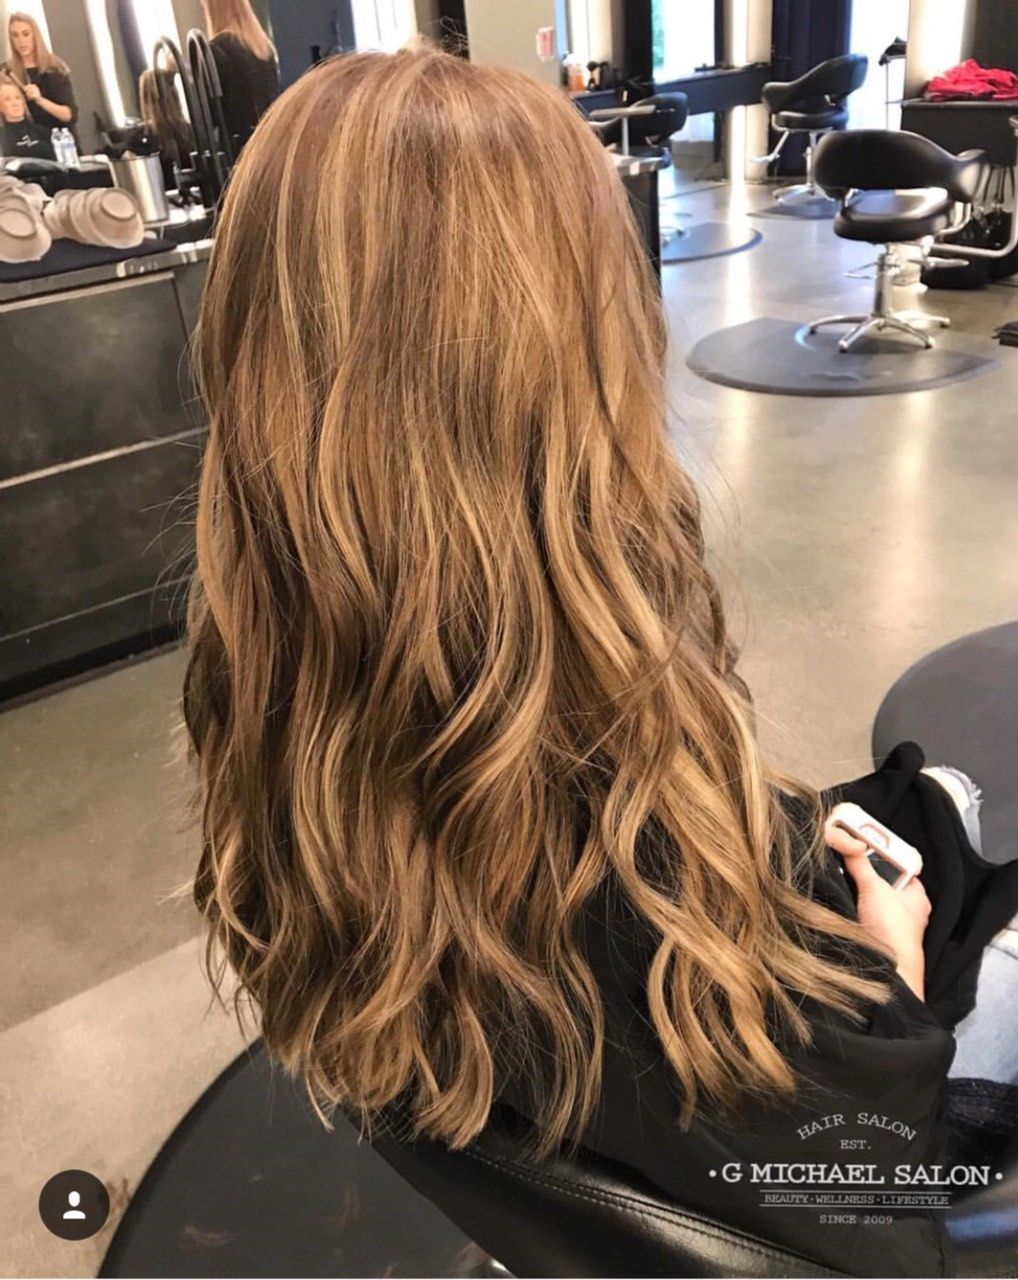 Traditional Bronde Highlights By The Design Team At G Michael Salon Indy S Premier Oribe Salon Indy Indyhair Carm Cool Hairstyles Best Hair Salon Hair